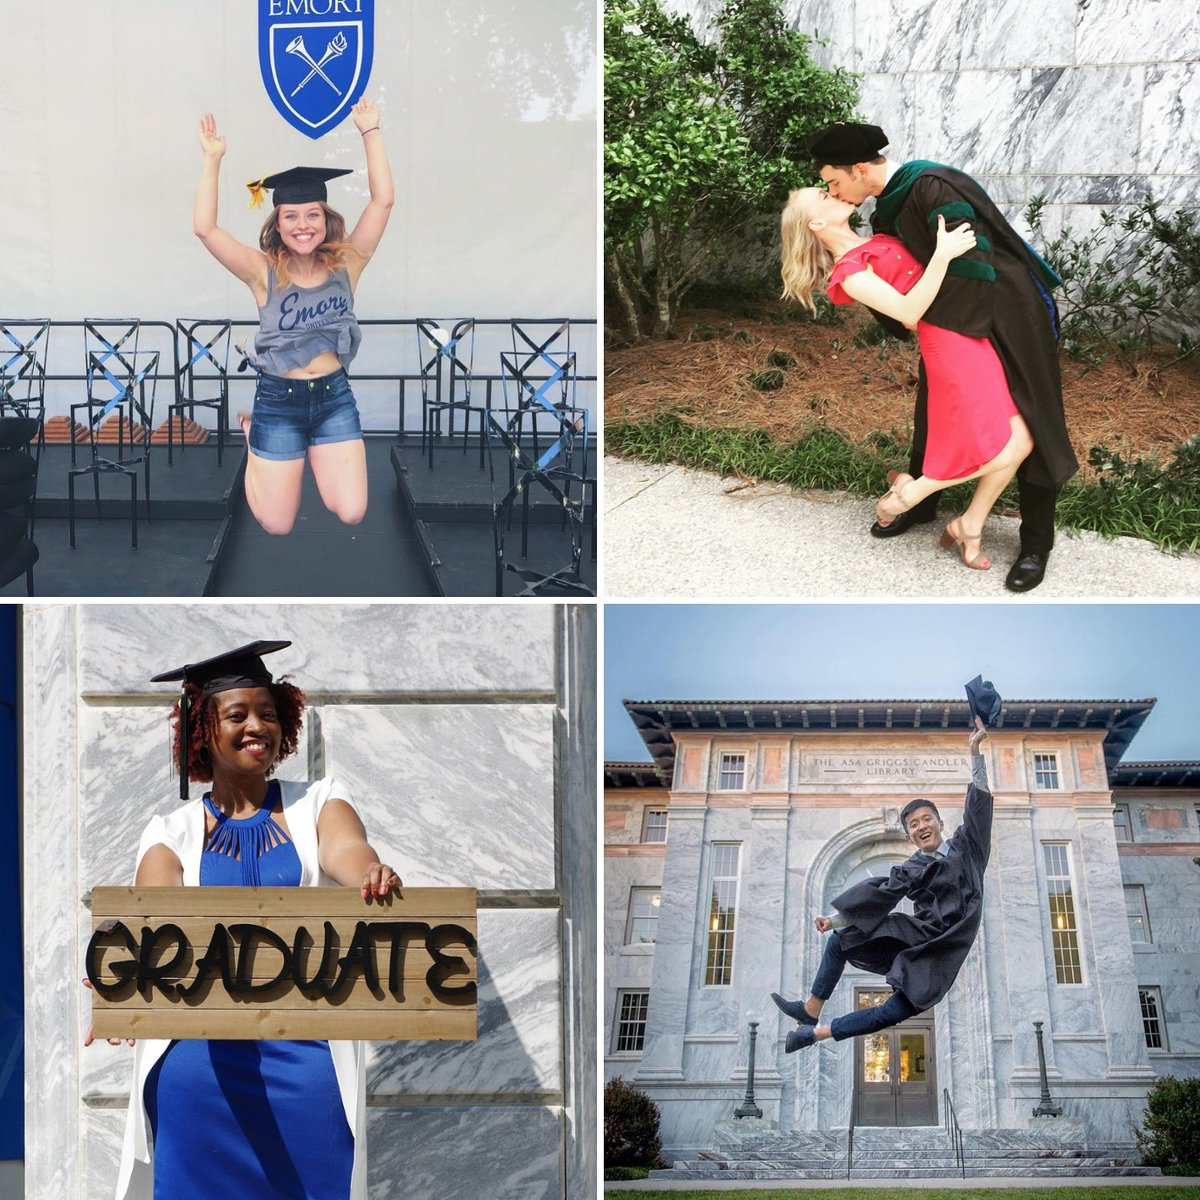 Wow, #Emory2018 - Thanks for sharing all the fantastic photos! See a whole lot more at https://t.co/a4IGszCoBU https://t.co/NLHRbIuYqf